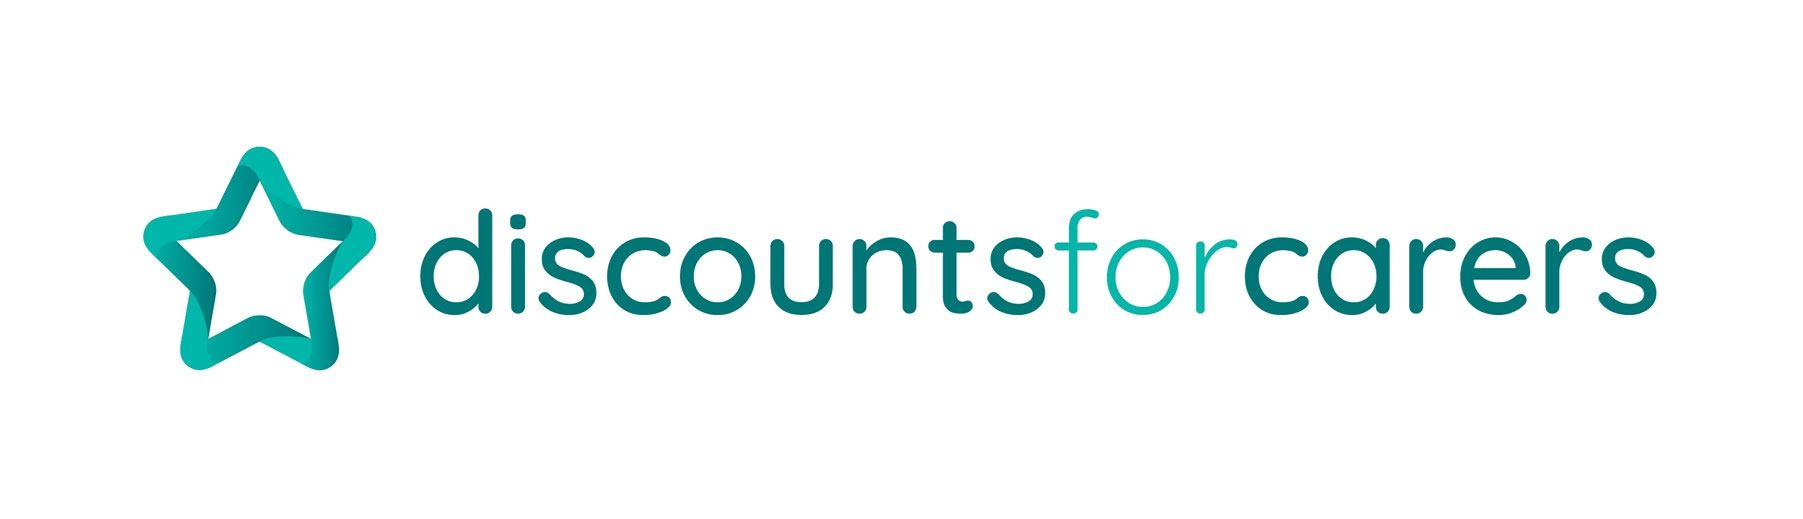 Discounts for Carers logo